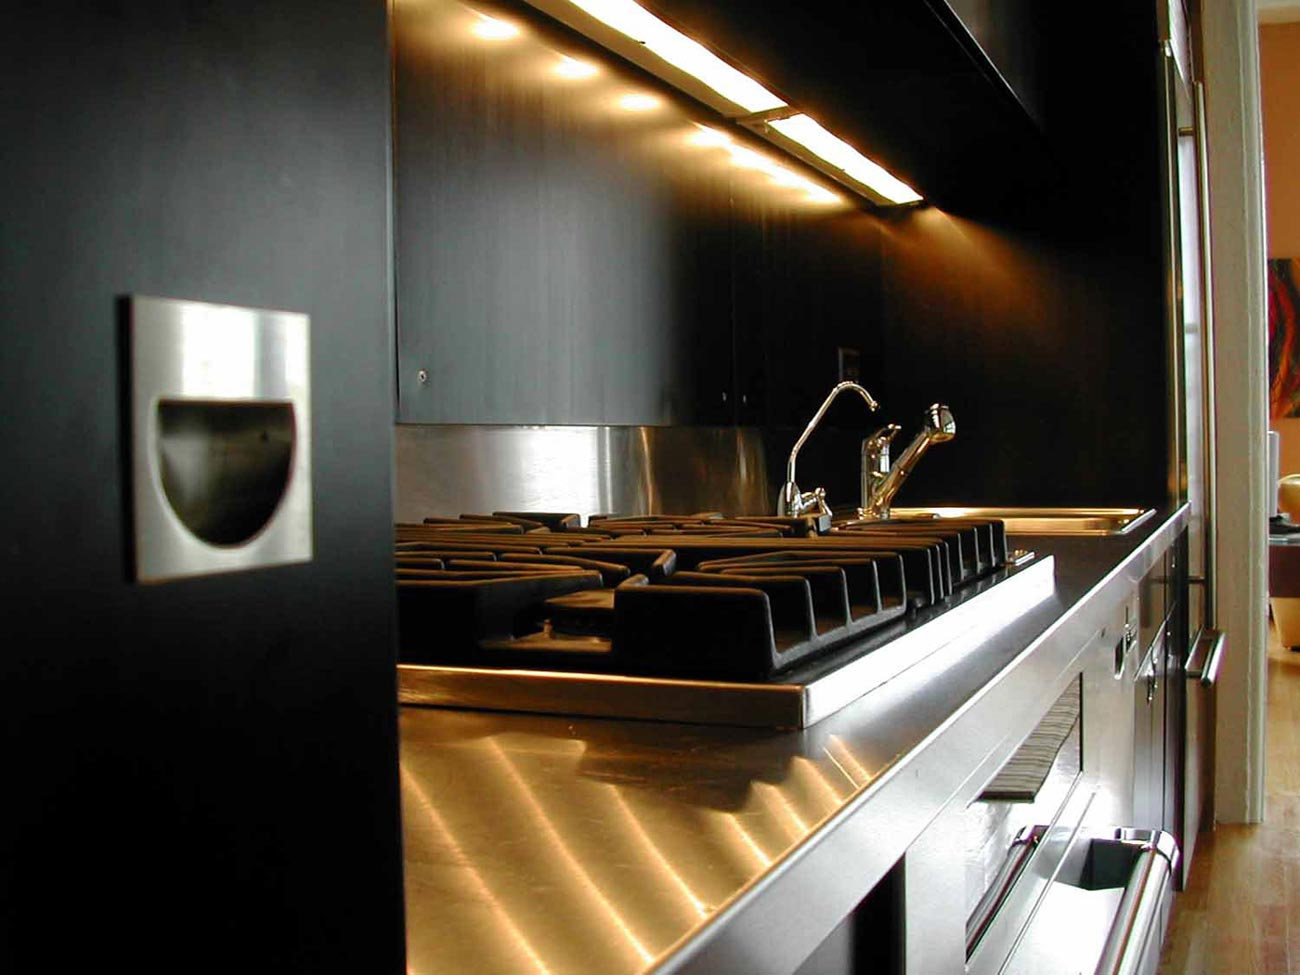 Refaced custom kitchen cabinets with modern black finish